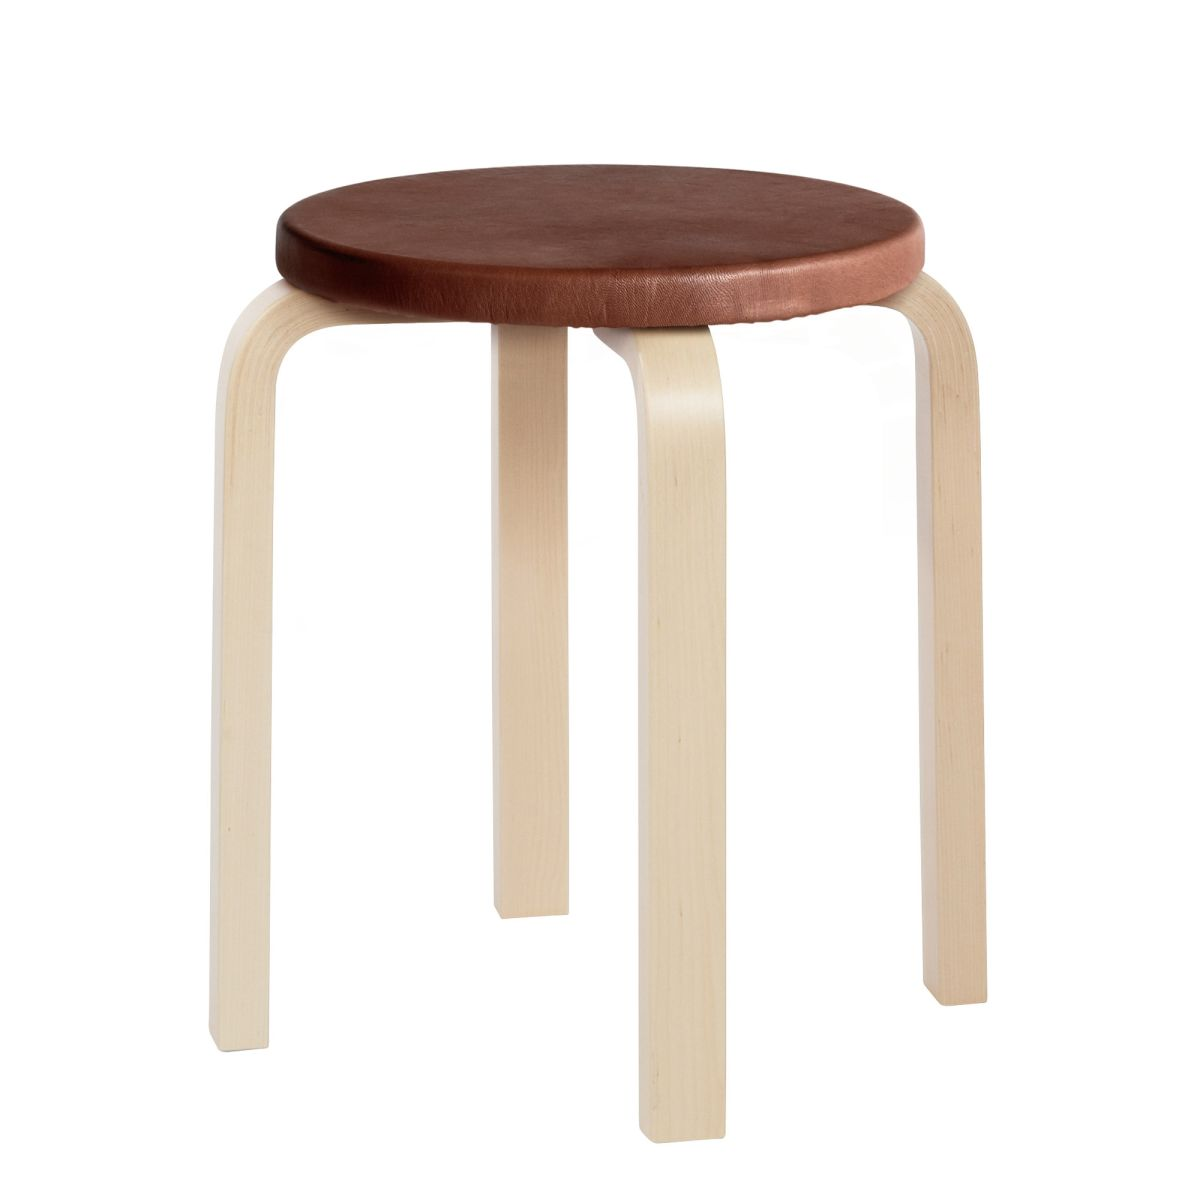 Stool-E60-Legs-Birch-Leather-Upholstery-No-Padding-Top-2197413